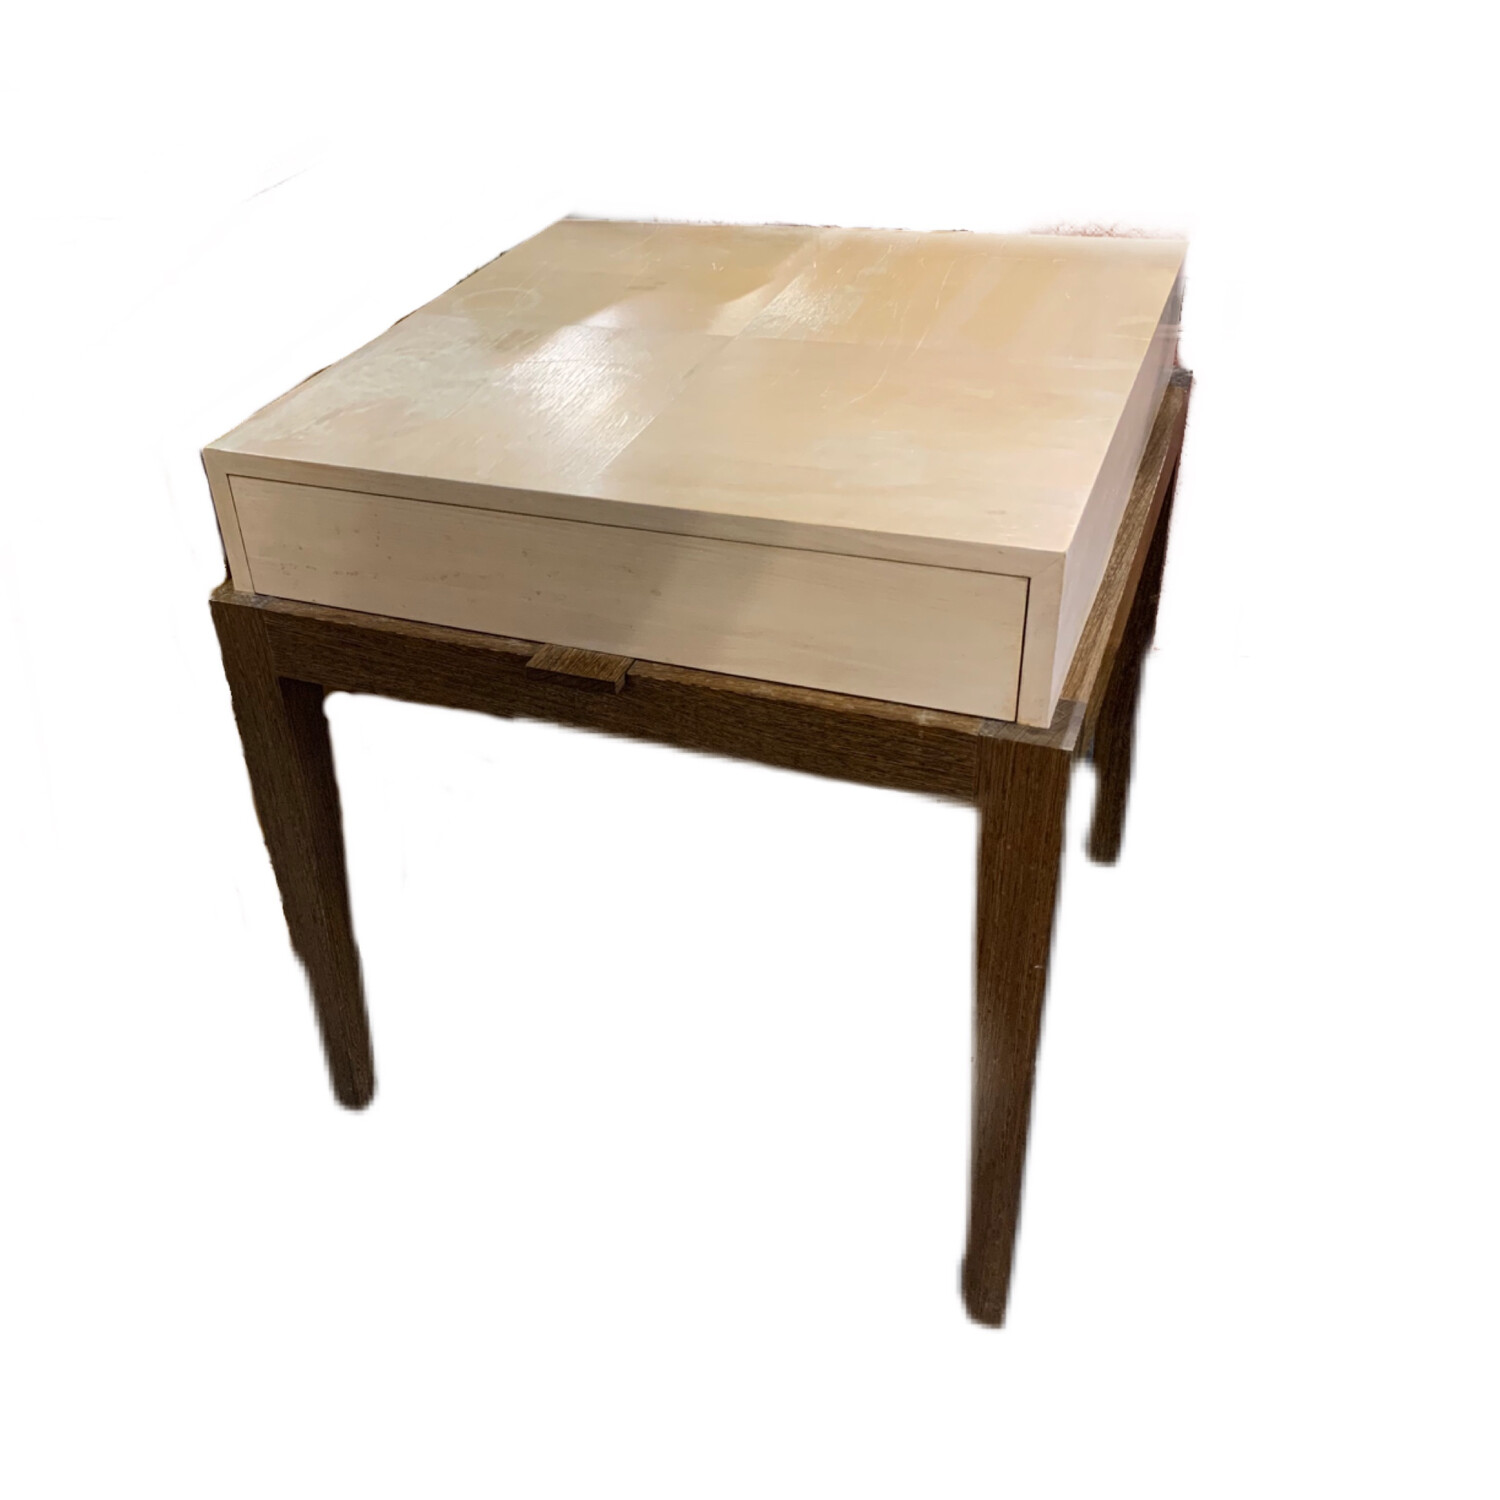 2 Tone Wooden Side Table